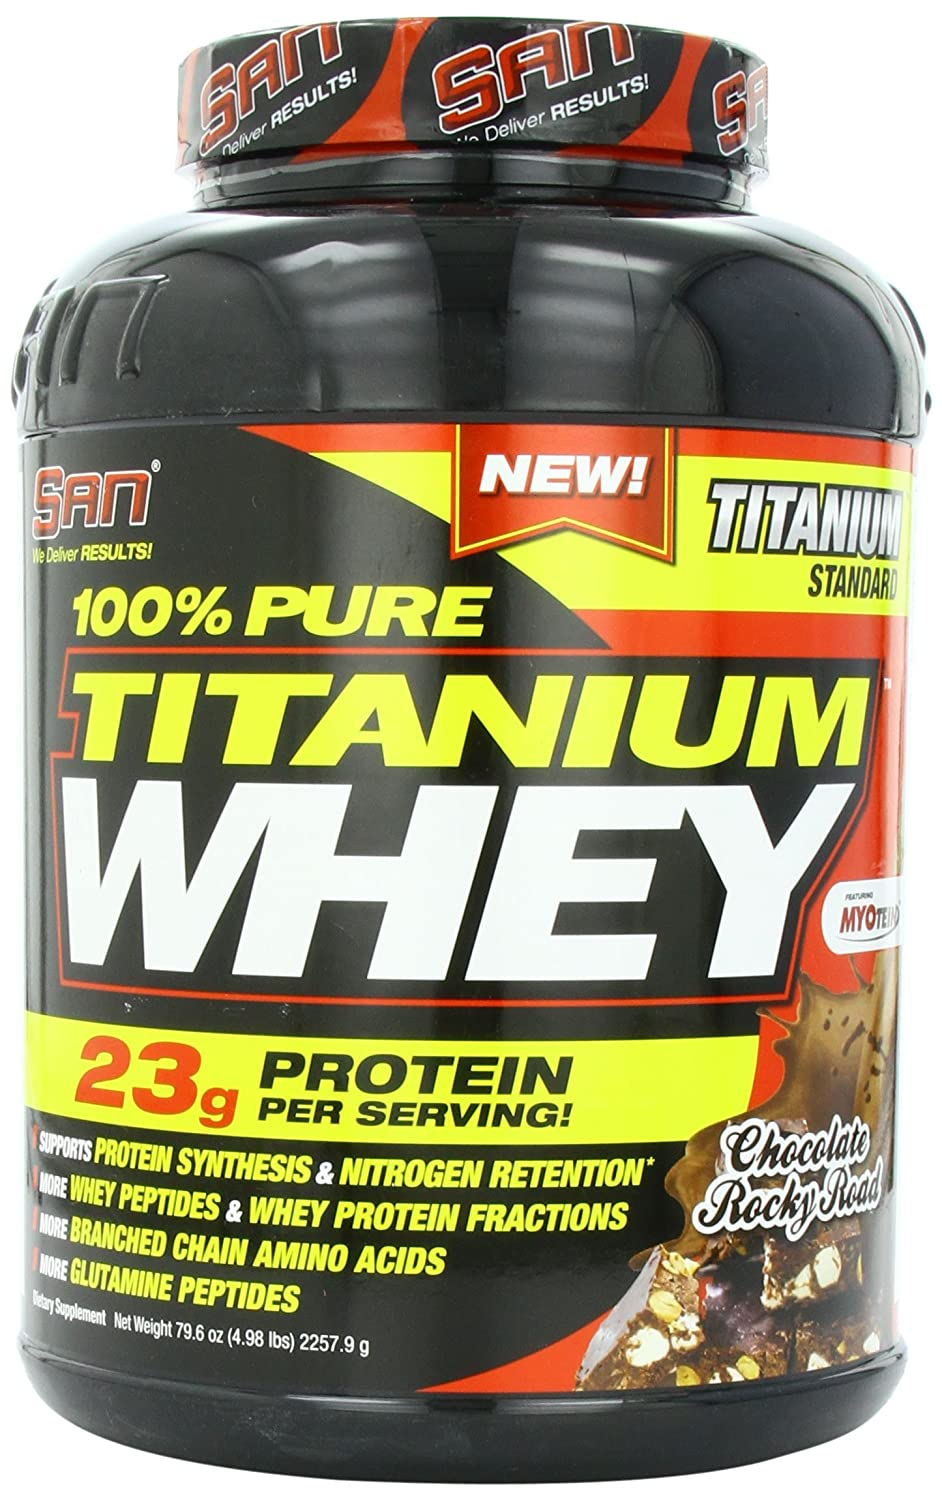 San Whey 100% Pure Titanium 4.98 Whey B00D3J4DAS Chocolate Rocky Road 4.98 lbs B00D3J4DAS, DRAGON'S WAY:a87ed44c --- dakuwebsite.xyz